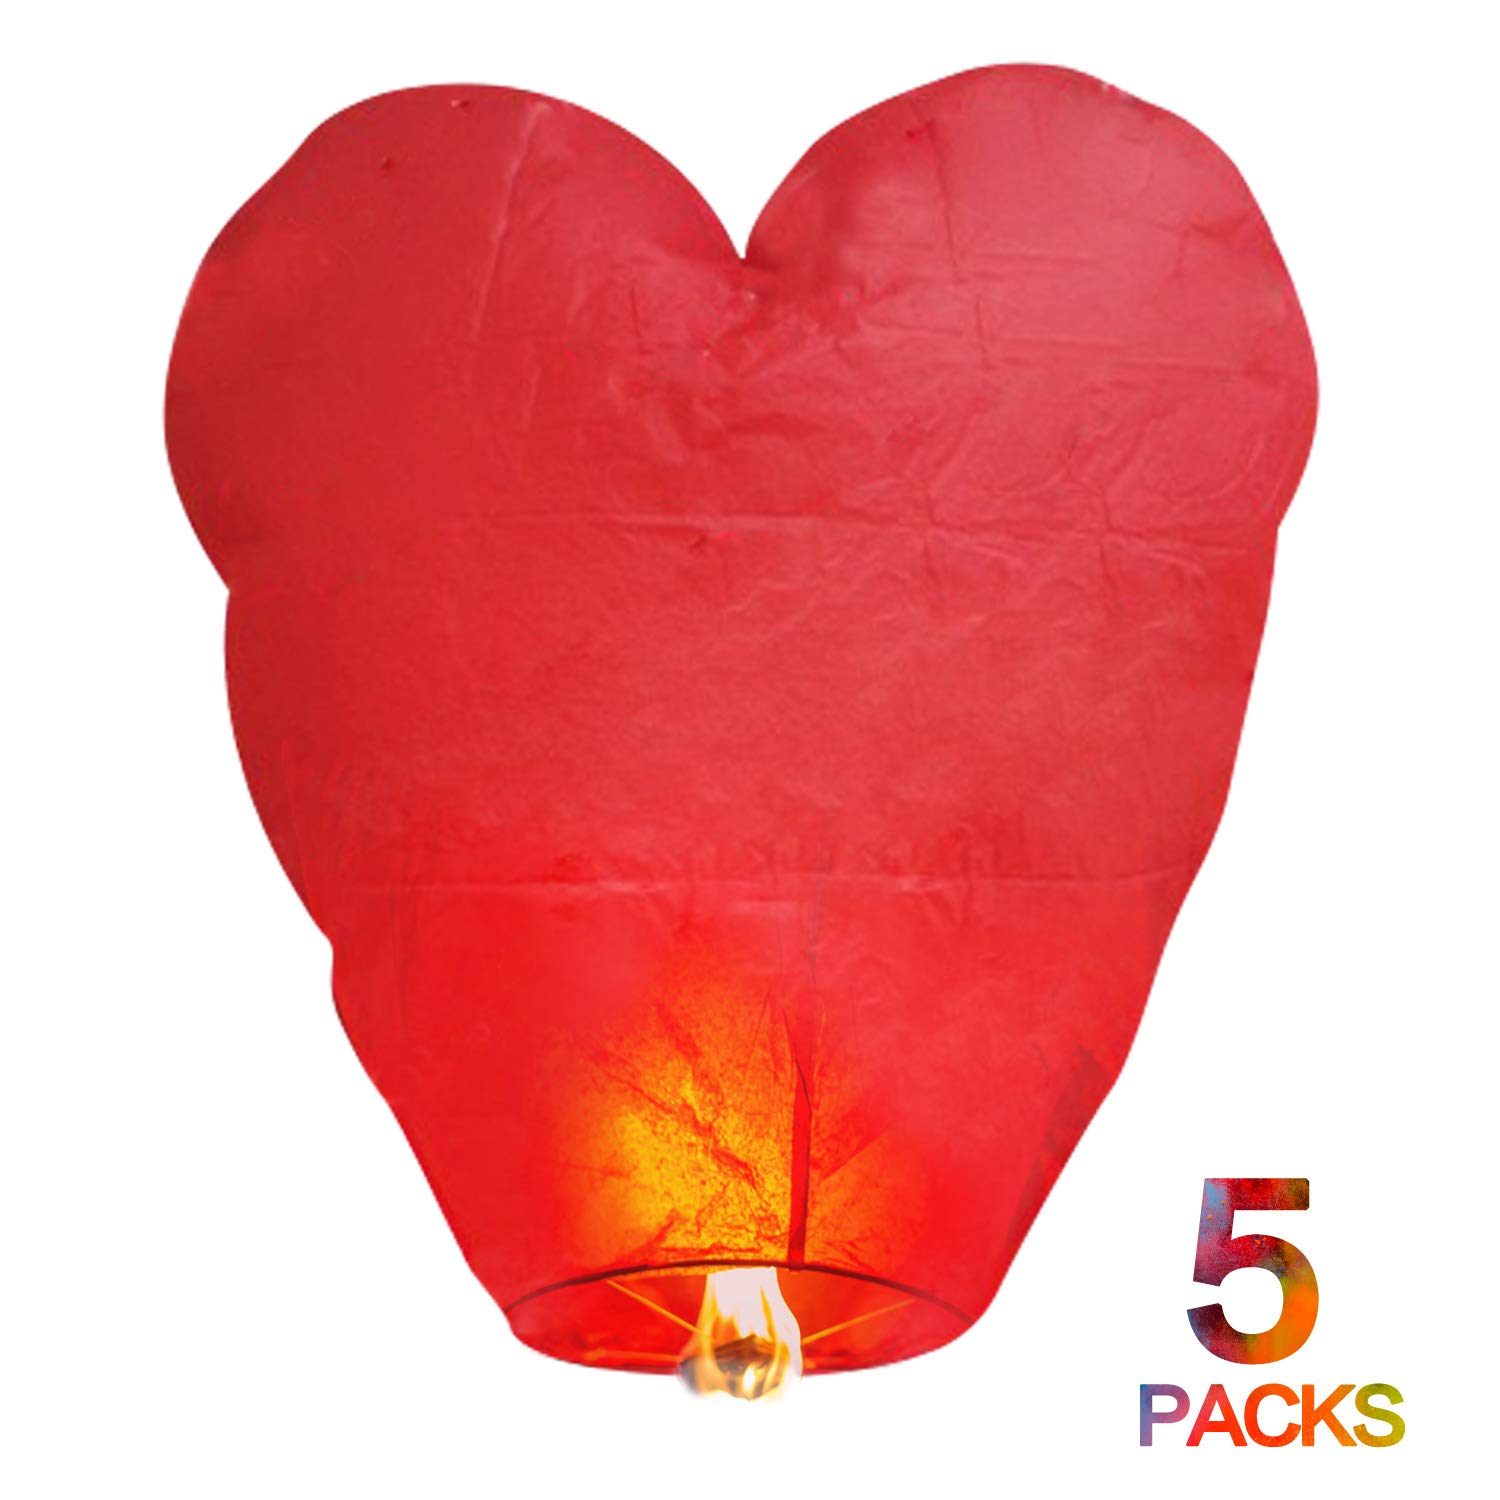 BATTIFE Floating Sky Lanterns Chinese Love Heart Shaped 100% Biodegradable Paper Eco Friendly Romantic Night 5 Pack for Valentine's Day Party Memorial Day to Release in Sky by BATTIFE